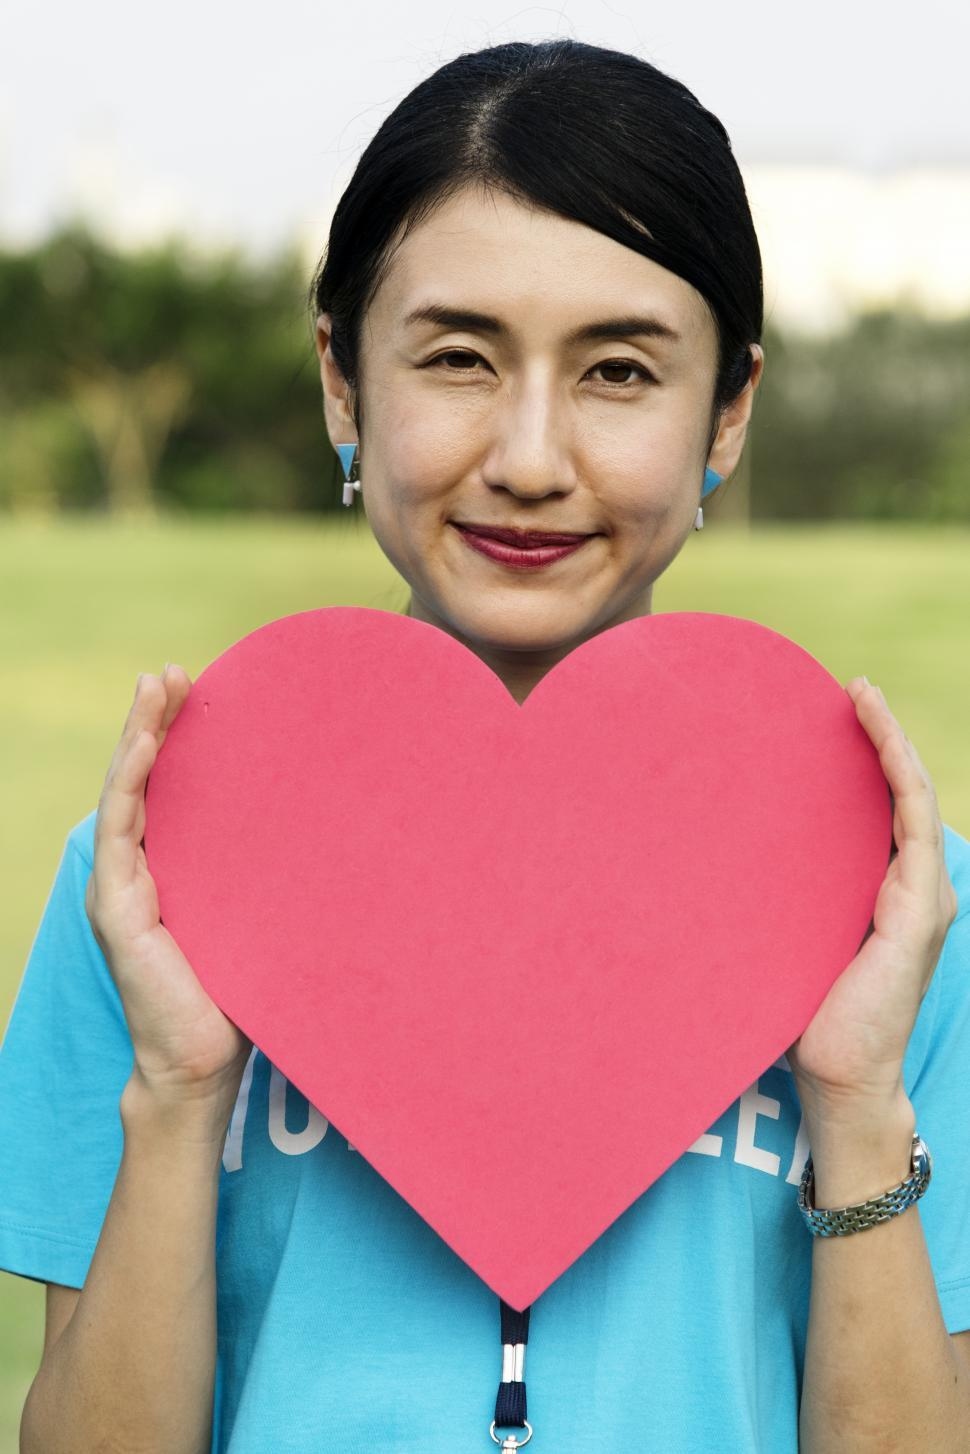 Download Free Stock HD Photo of A young Asian ethnicity woman posing with a red heart shaped cut out Online